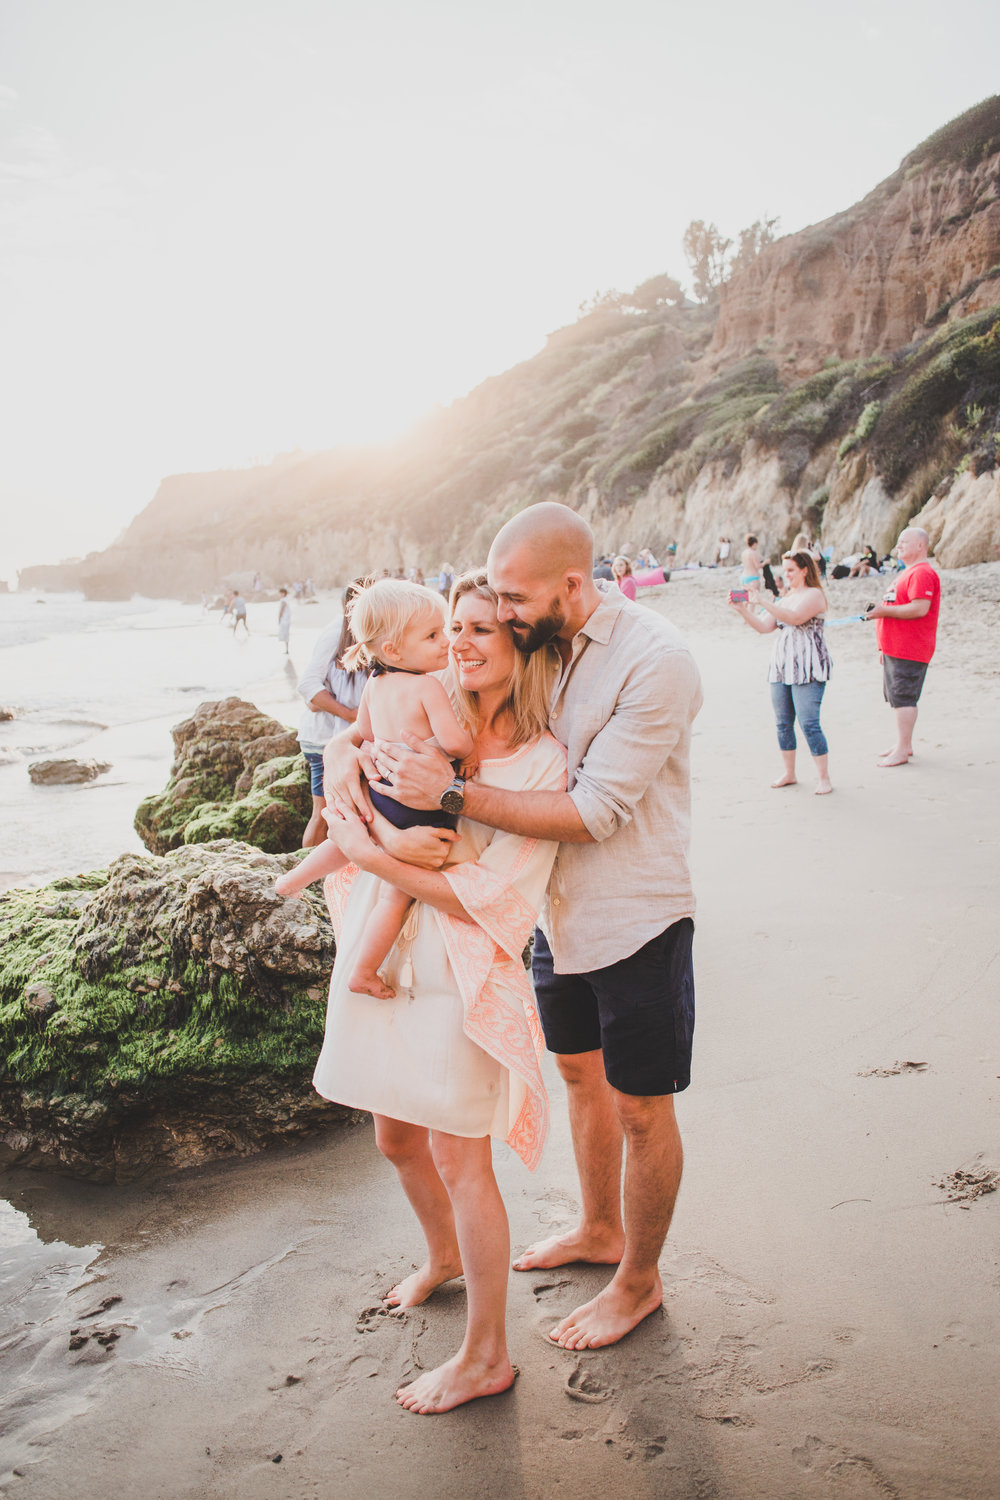 Affordable Family Summer Beach Fashion - Marks & Spencer - Family Beach Photos - Briana Lindsey Photography